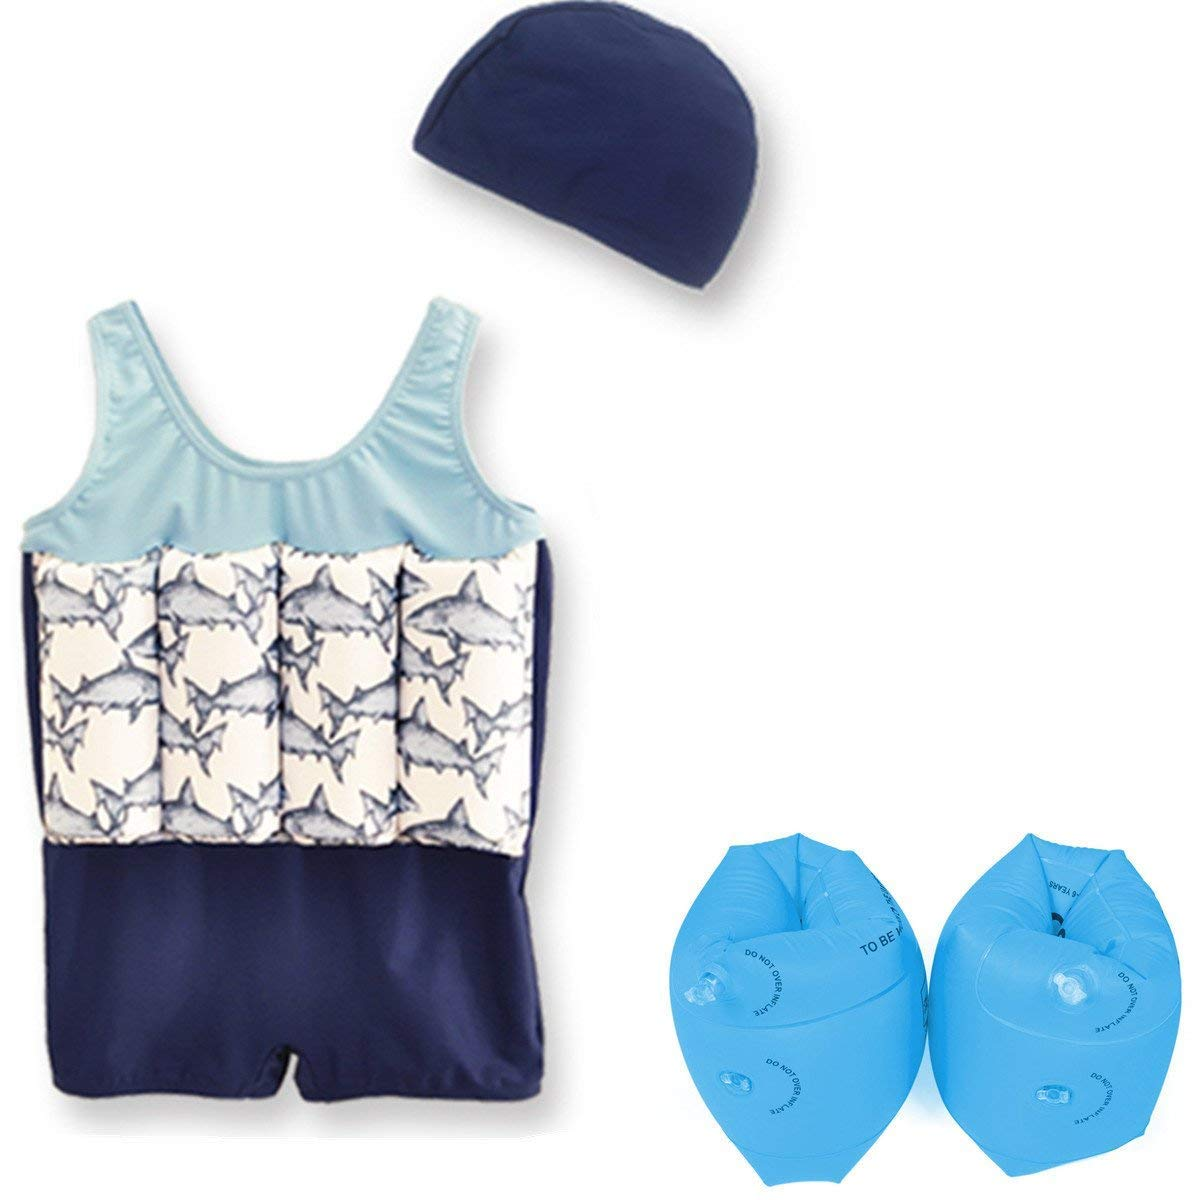 Wowelife Baby Floatation Suit with Arm Bands Toddler Floating Swimsuit with 8 Removable Buoyancy Sticks for Boys and Girls, 1-4 Years